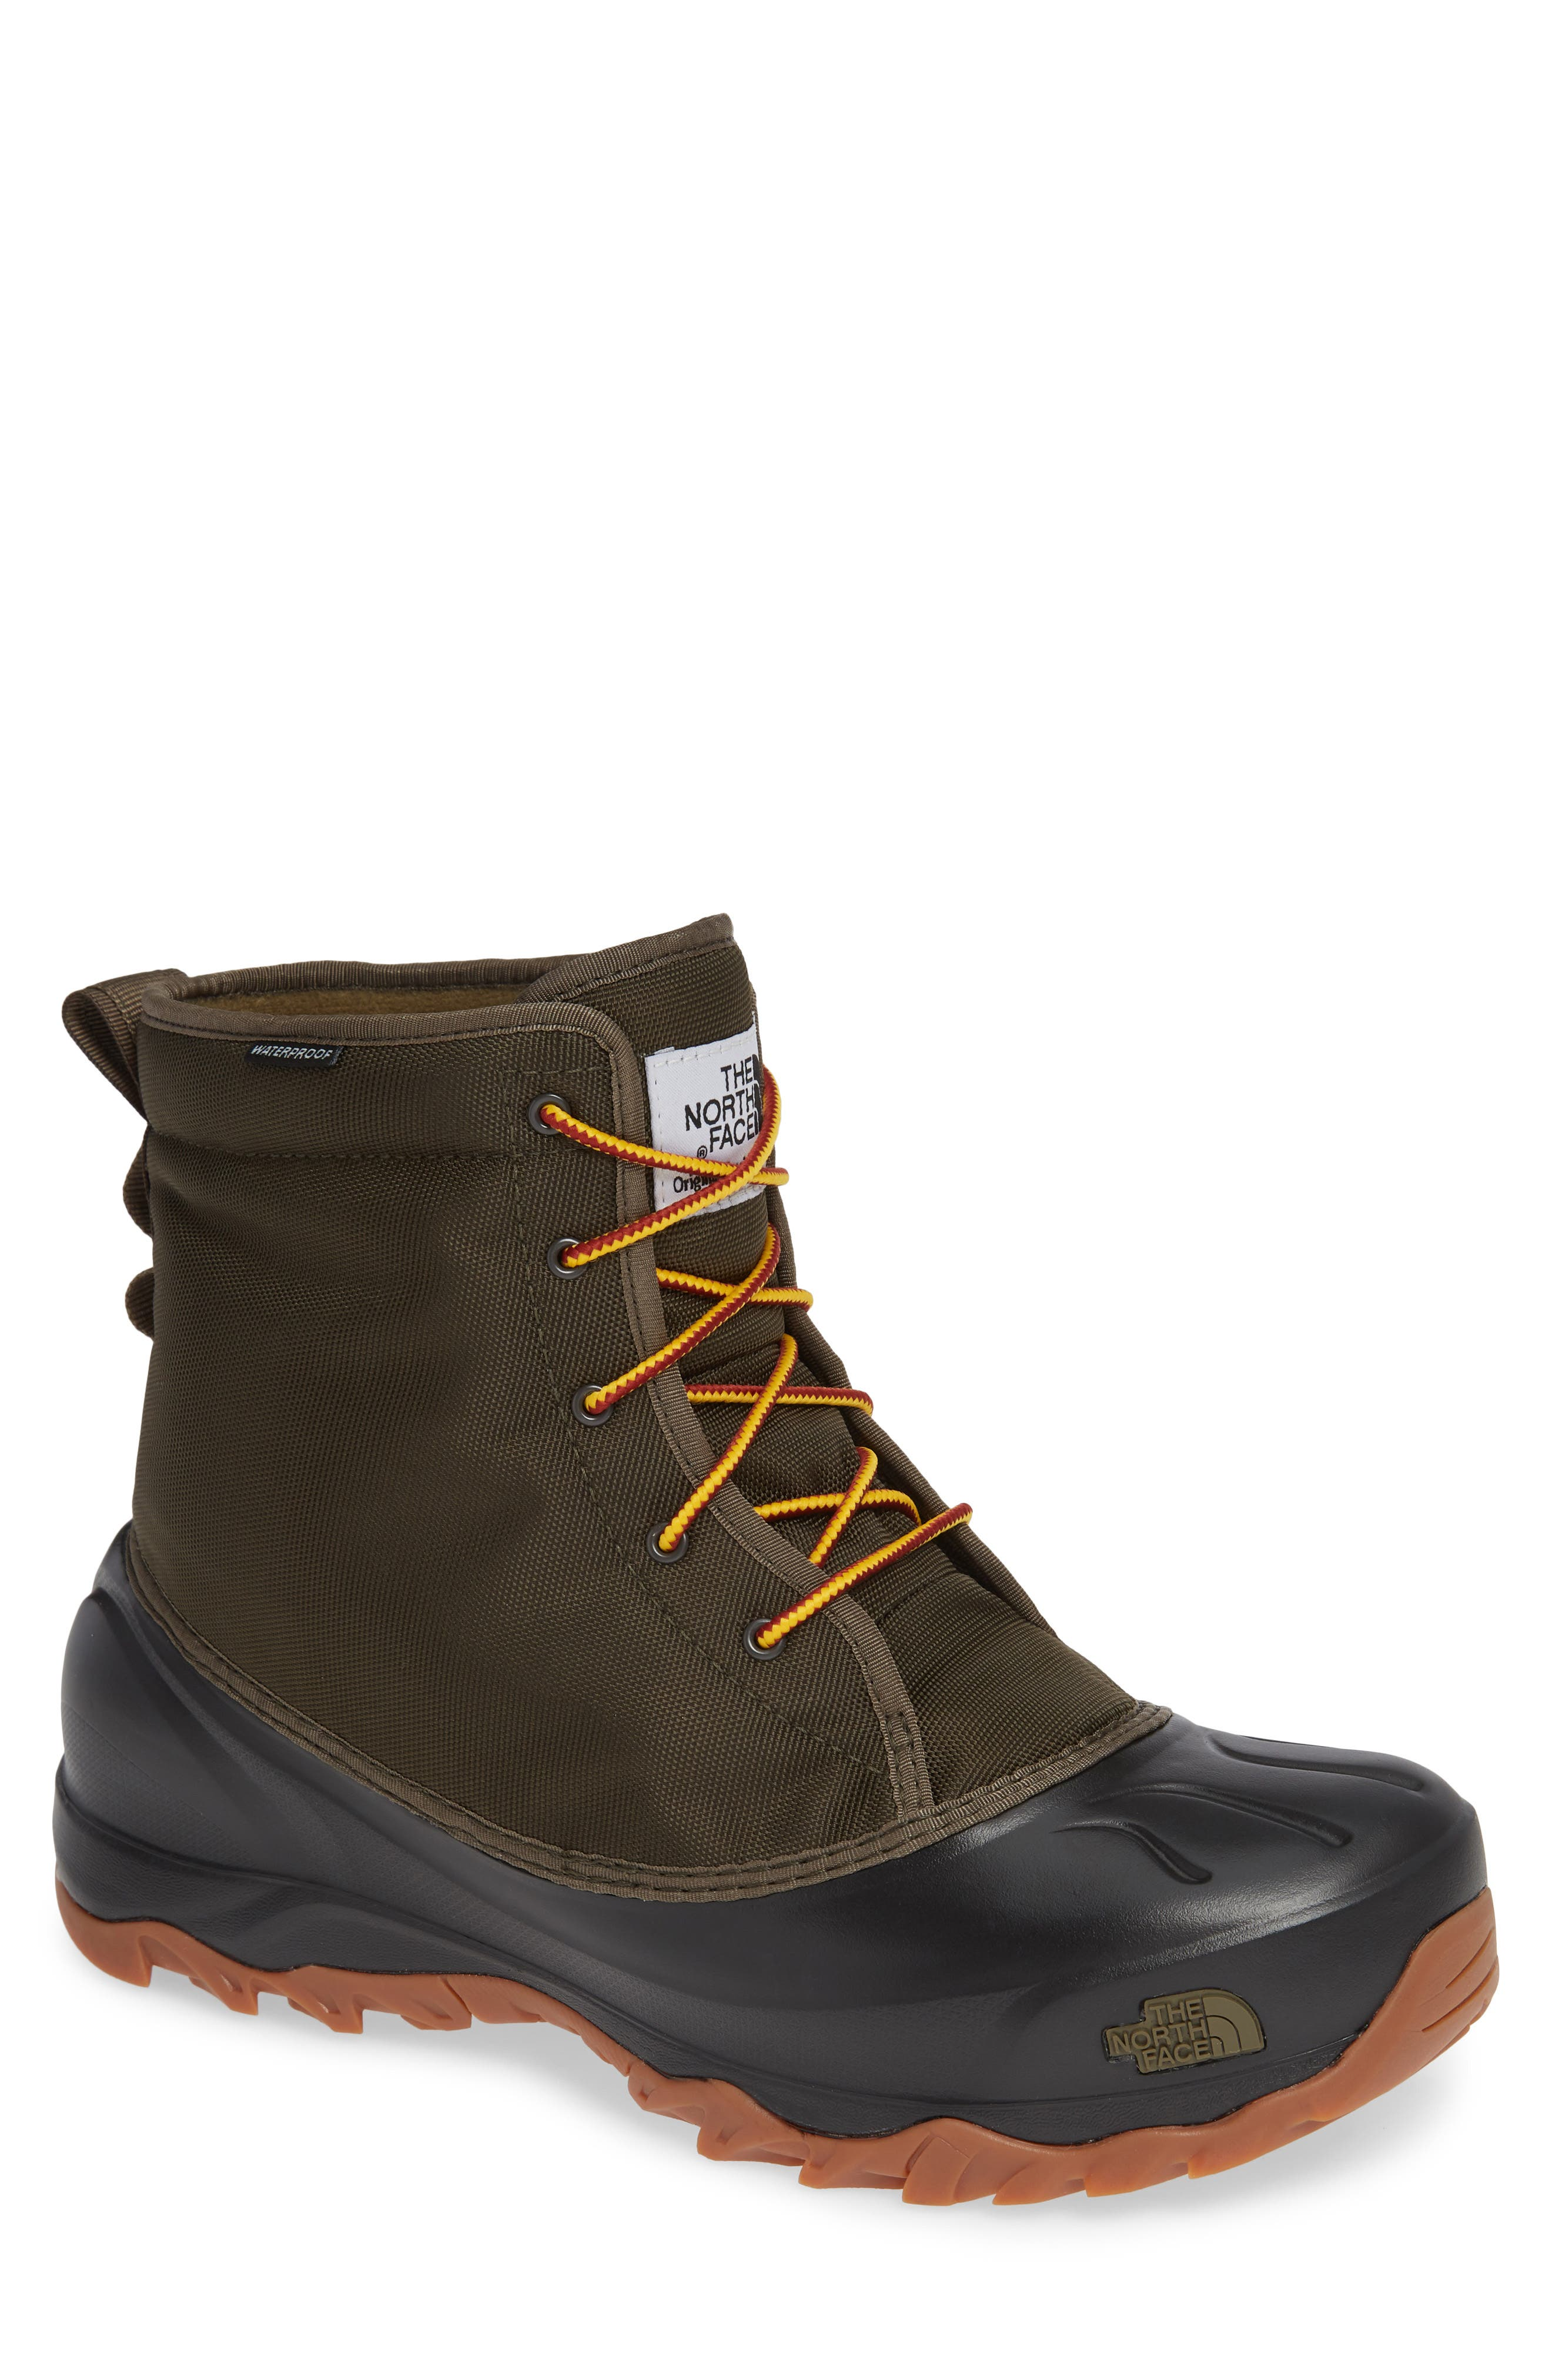 The North Face Tsumoru Snow Waterproof Boot, Green